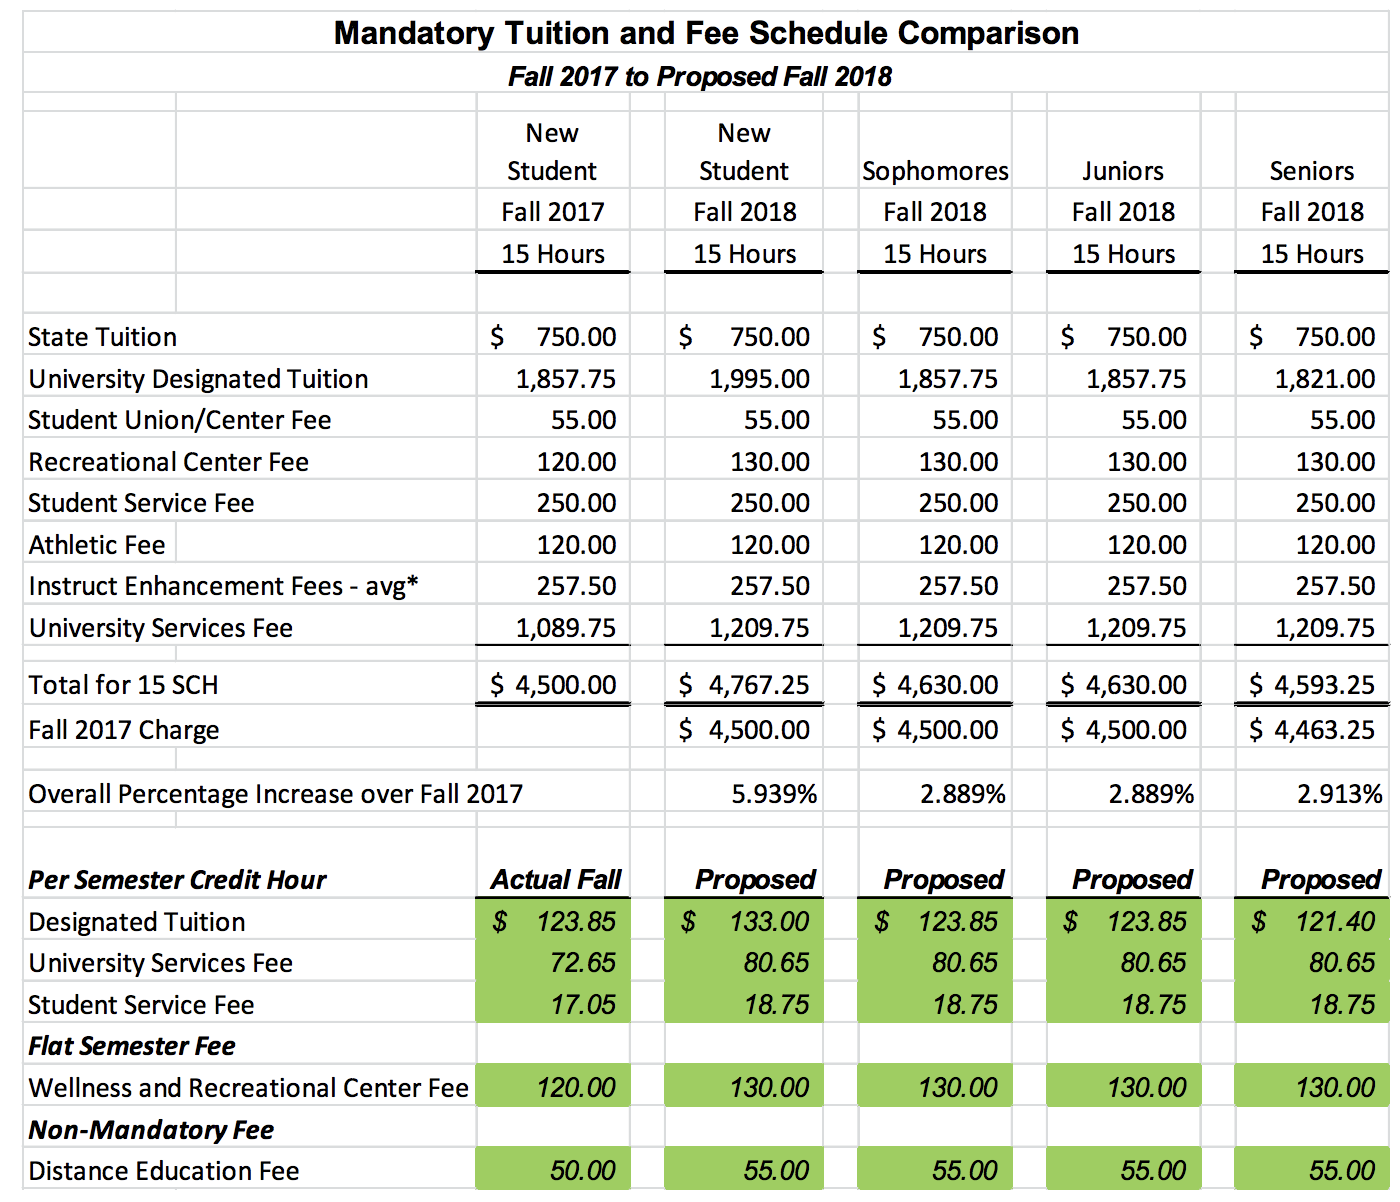 Board votes to increase tuition and fees